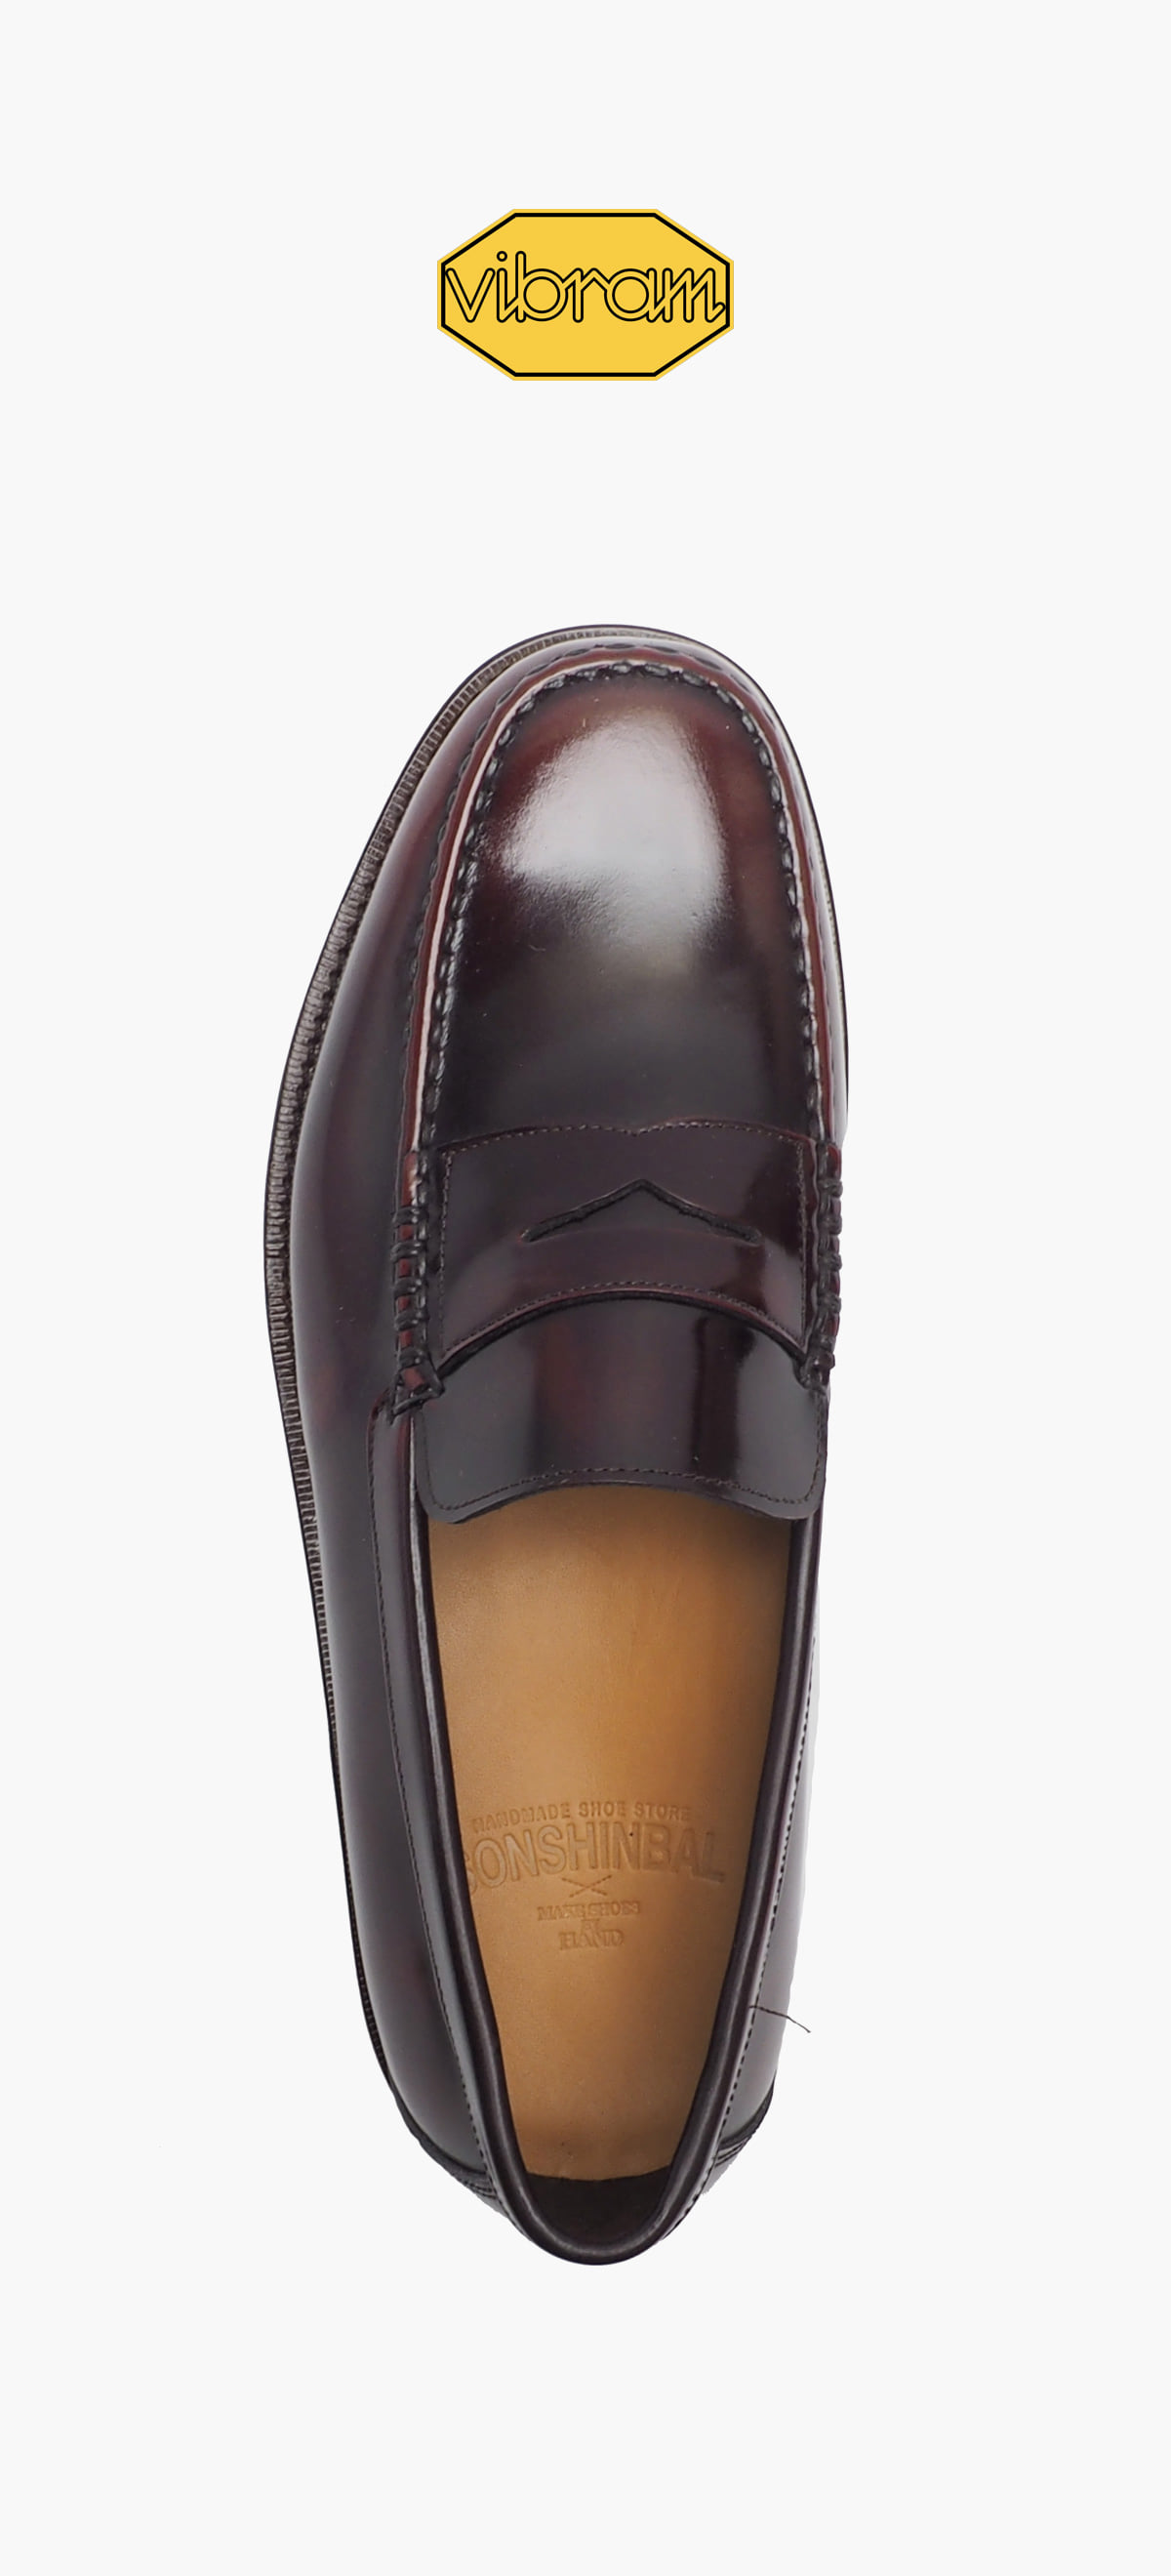 Penny Loafer 8012-17 Wine Two-Tone